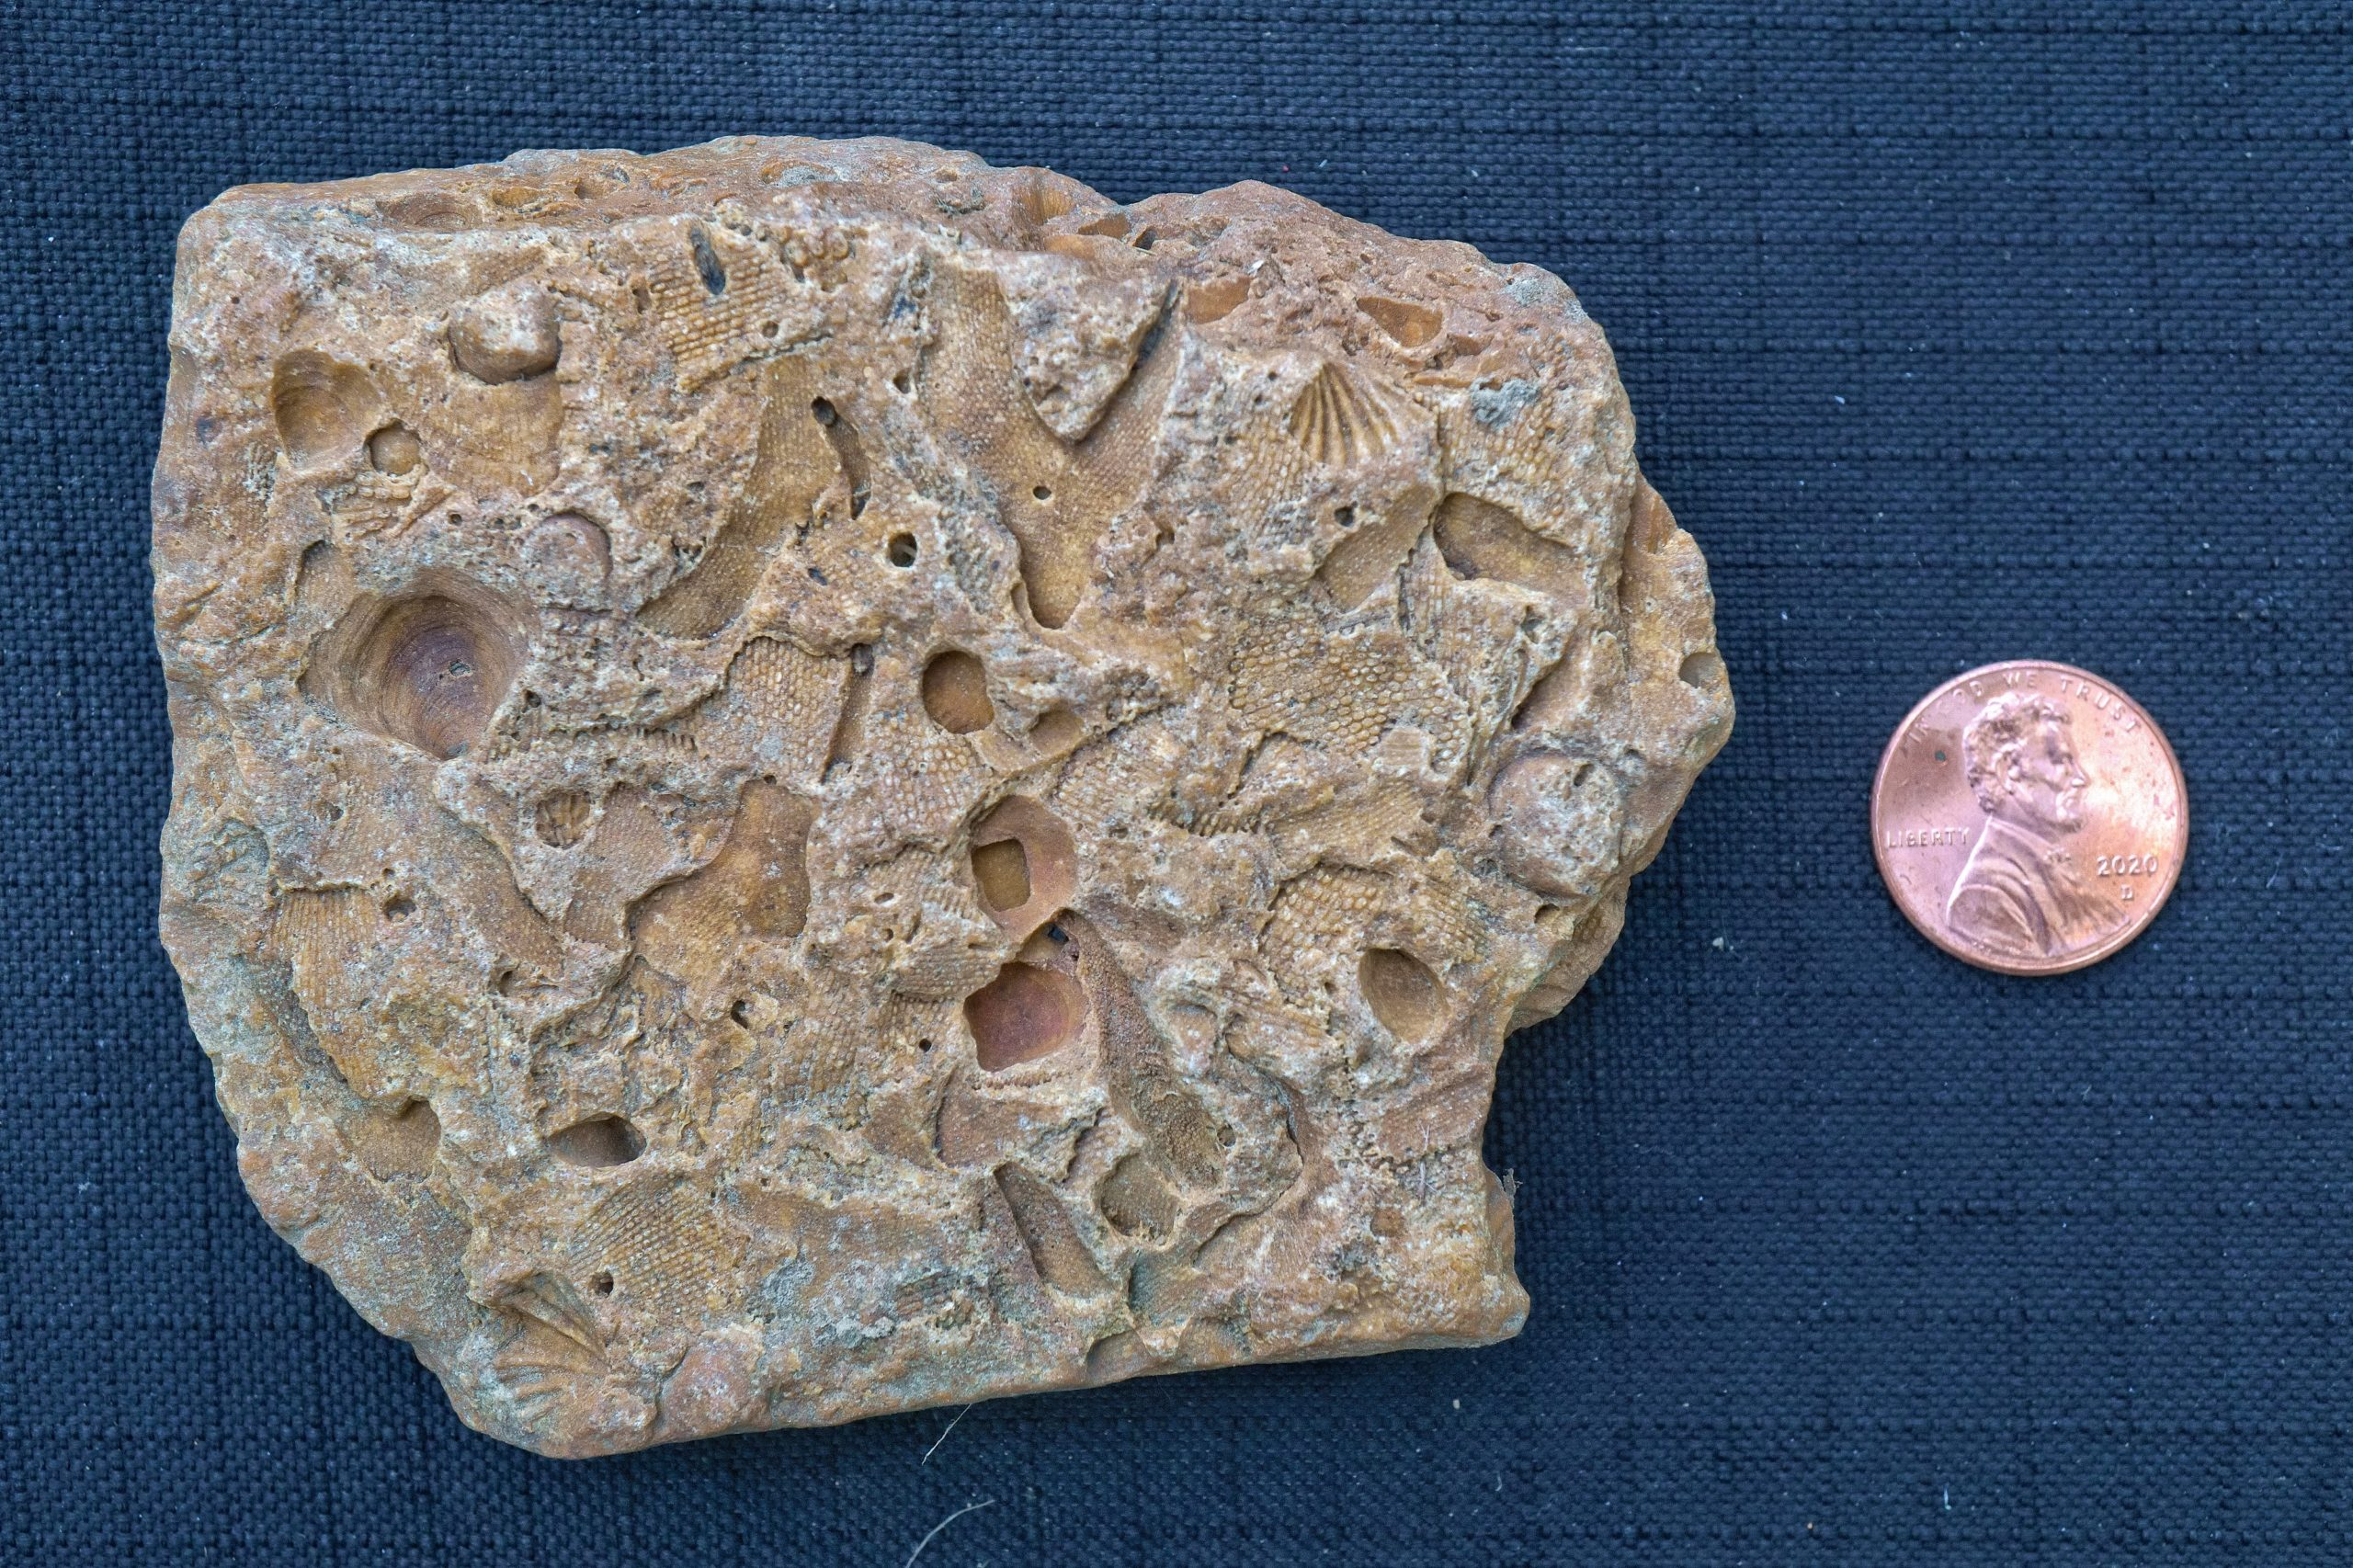 A rock with lots of different fossil impressions, next to a penny for scale. The rock is about four times as tall as the penny and five or six times as wide.